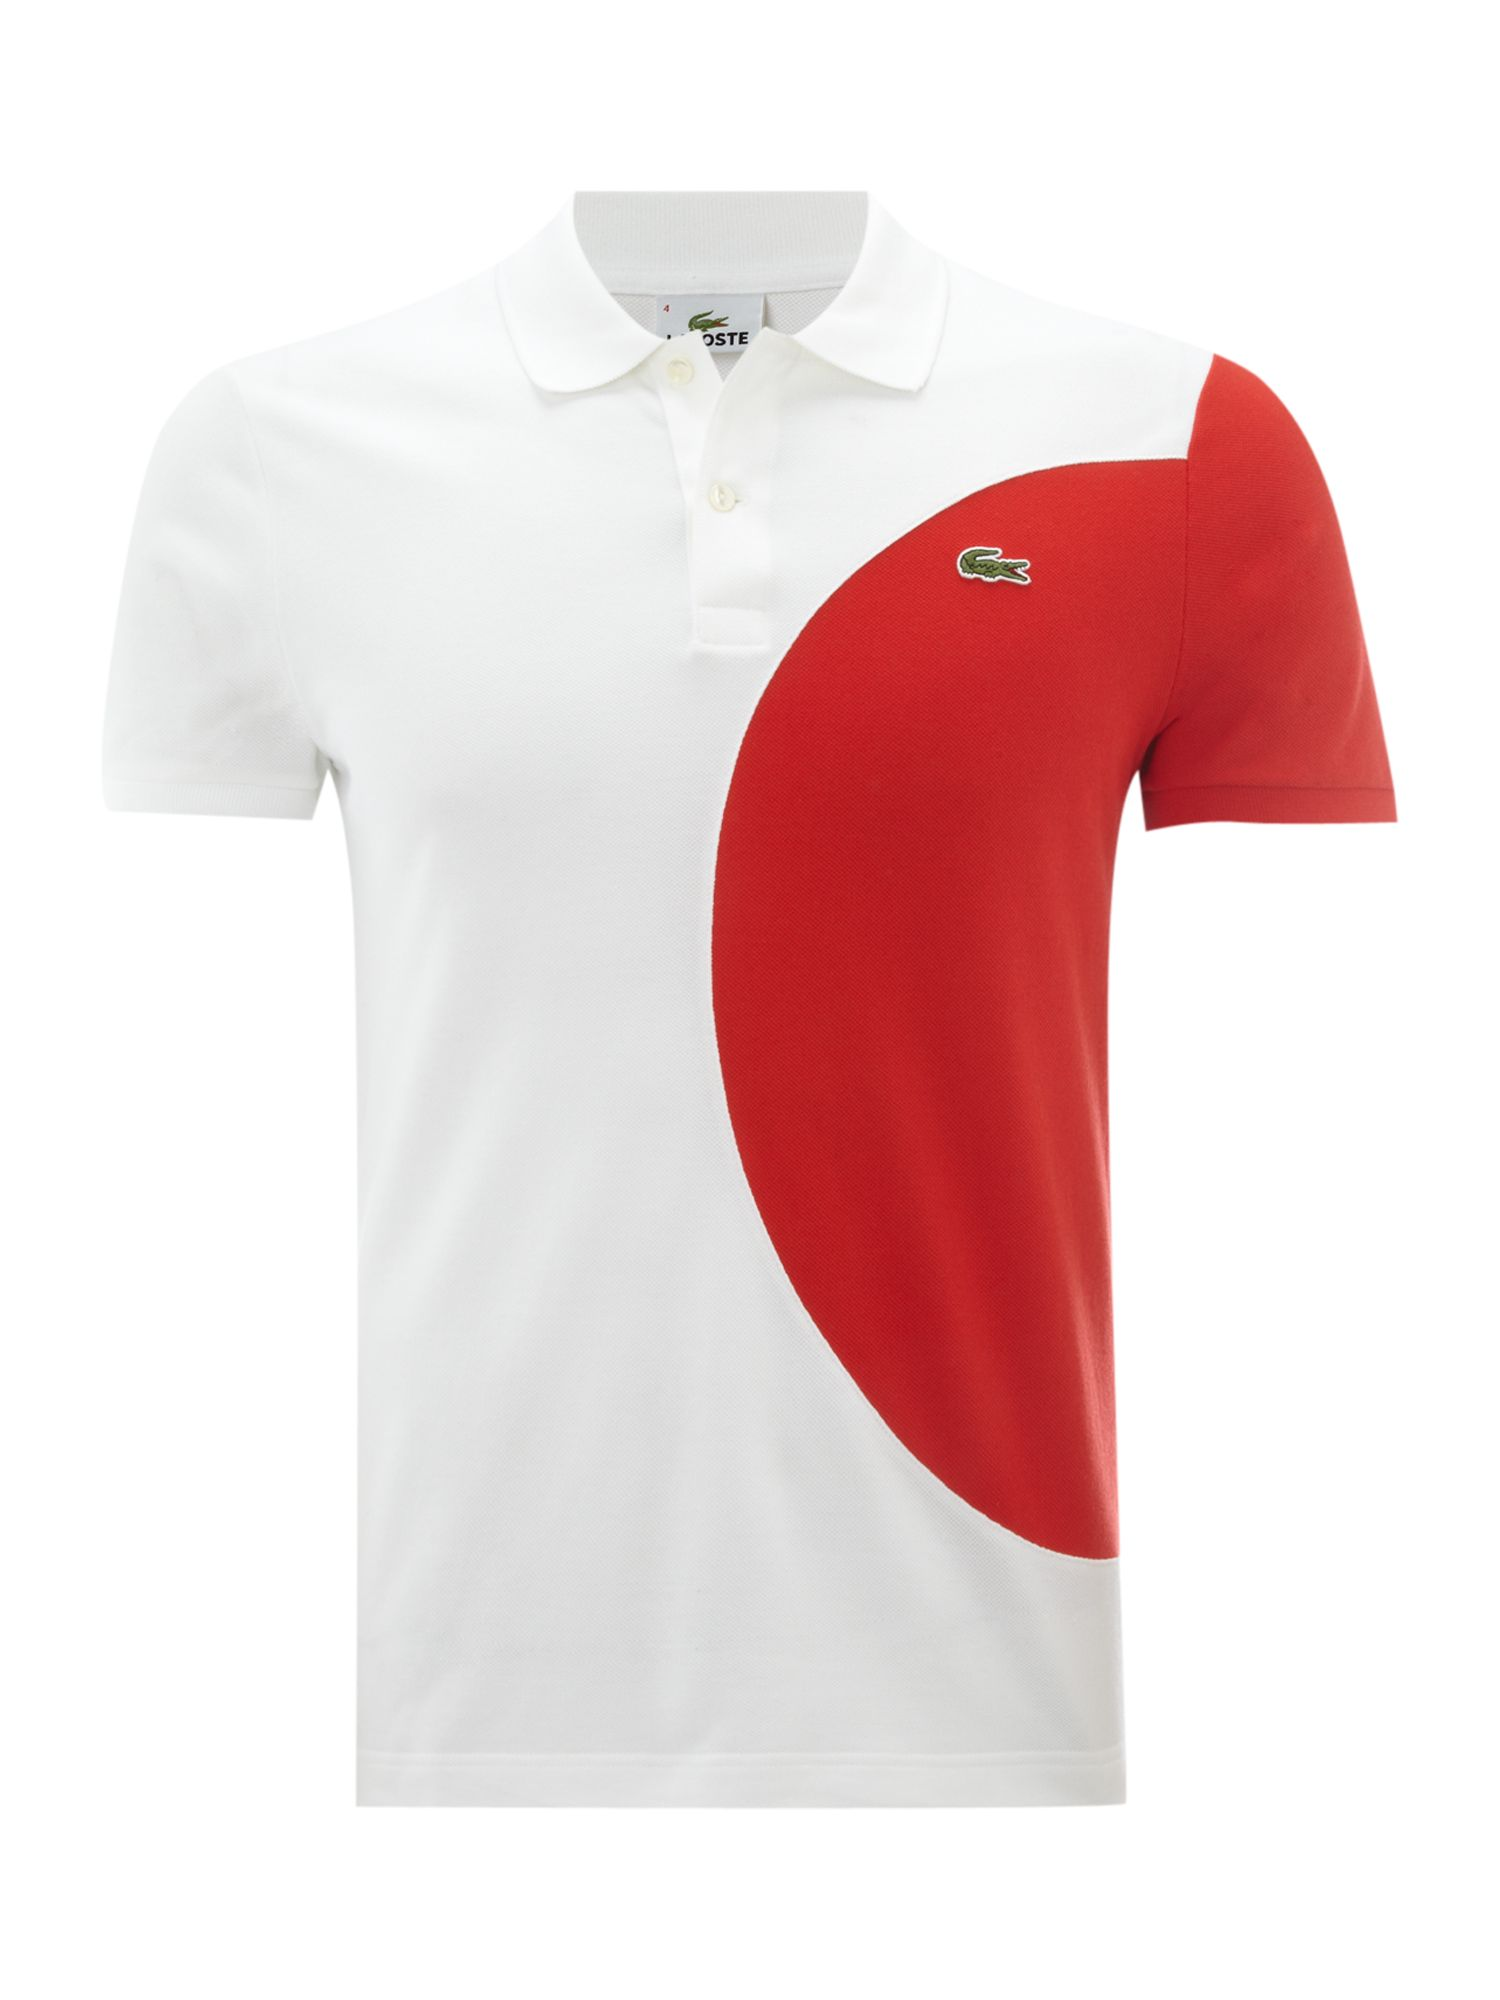 lacoste slim fit japan flag polo shirt in white for men lyst. Black Bedroom Furniture Sets. Home Design Ideas